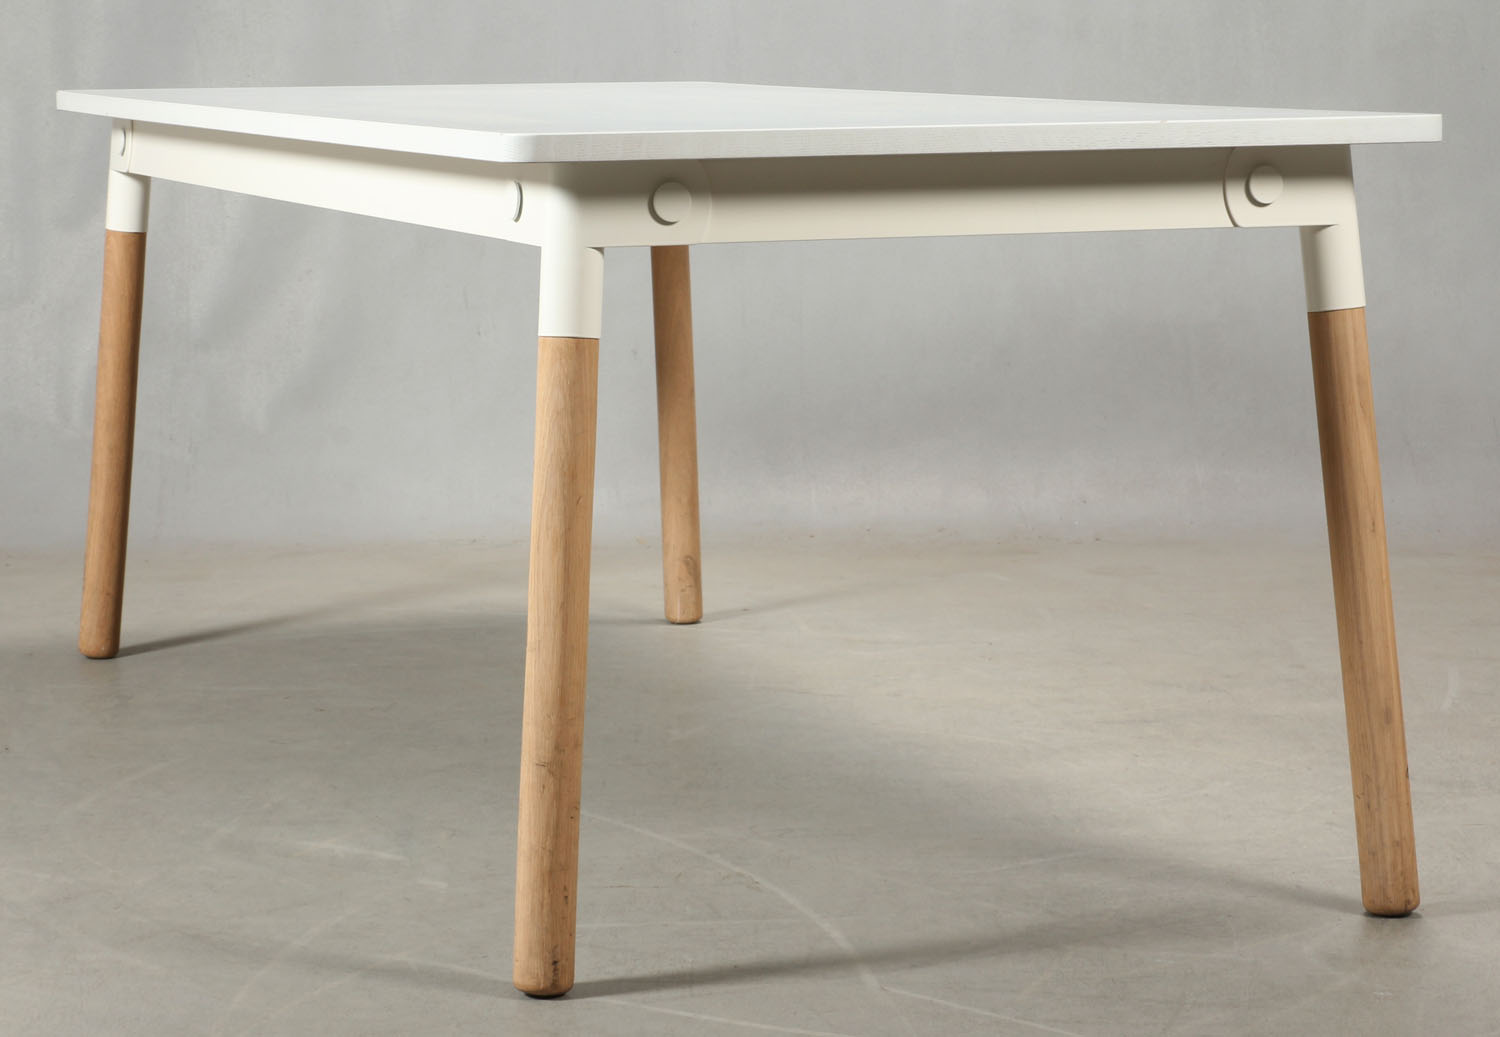 Muuto Adaptable Spisebord | FINN.no